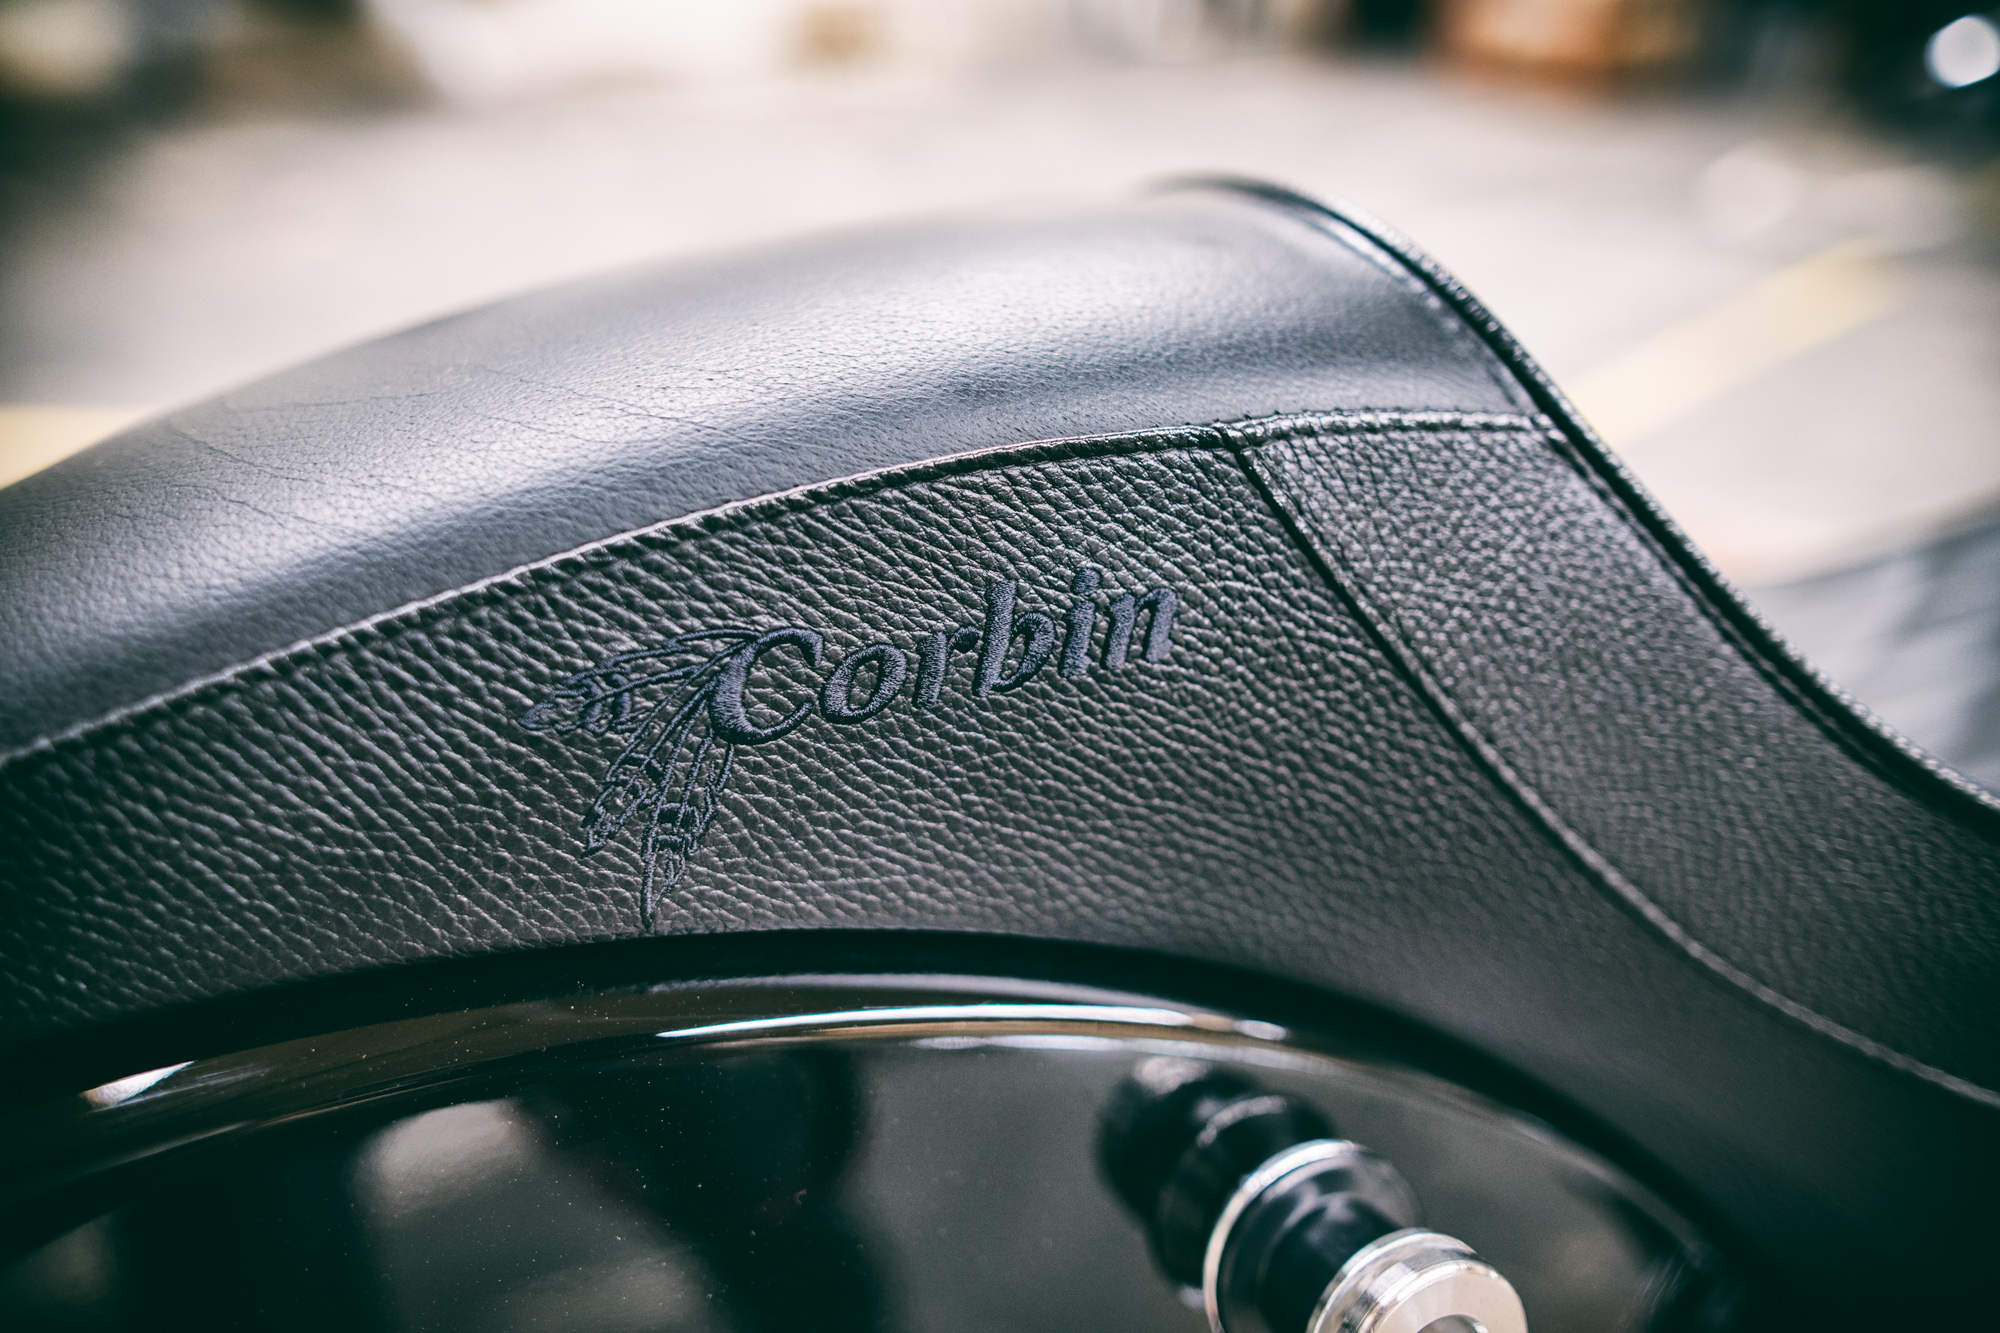 Indian Scout Corbin Saddle